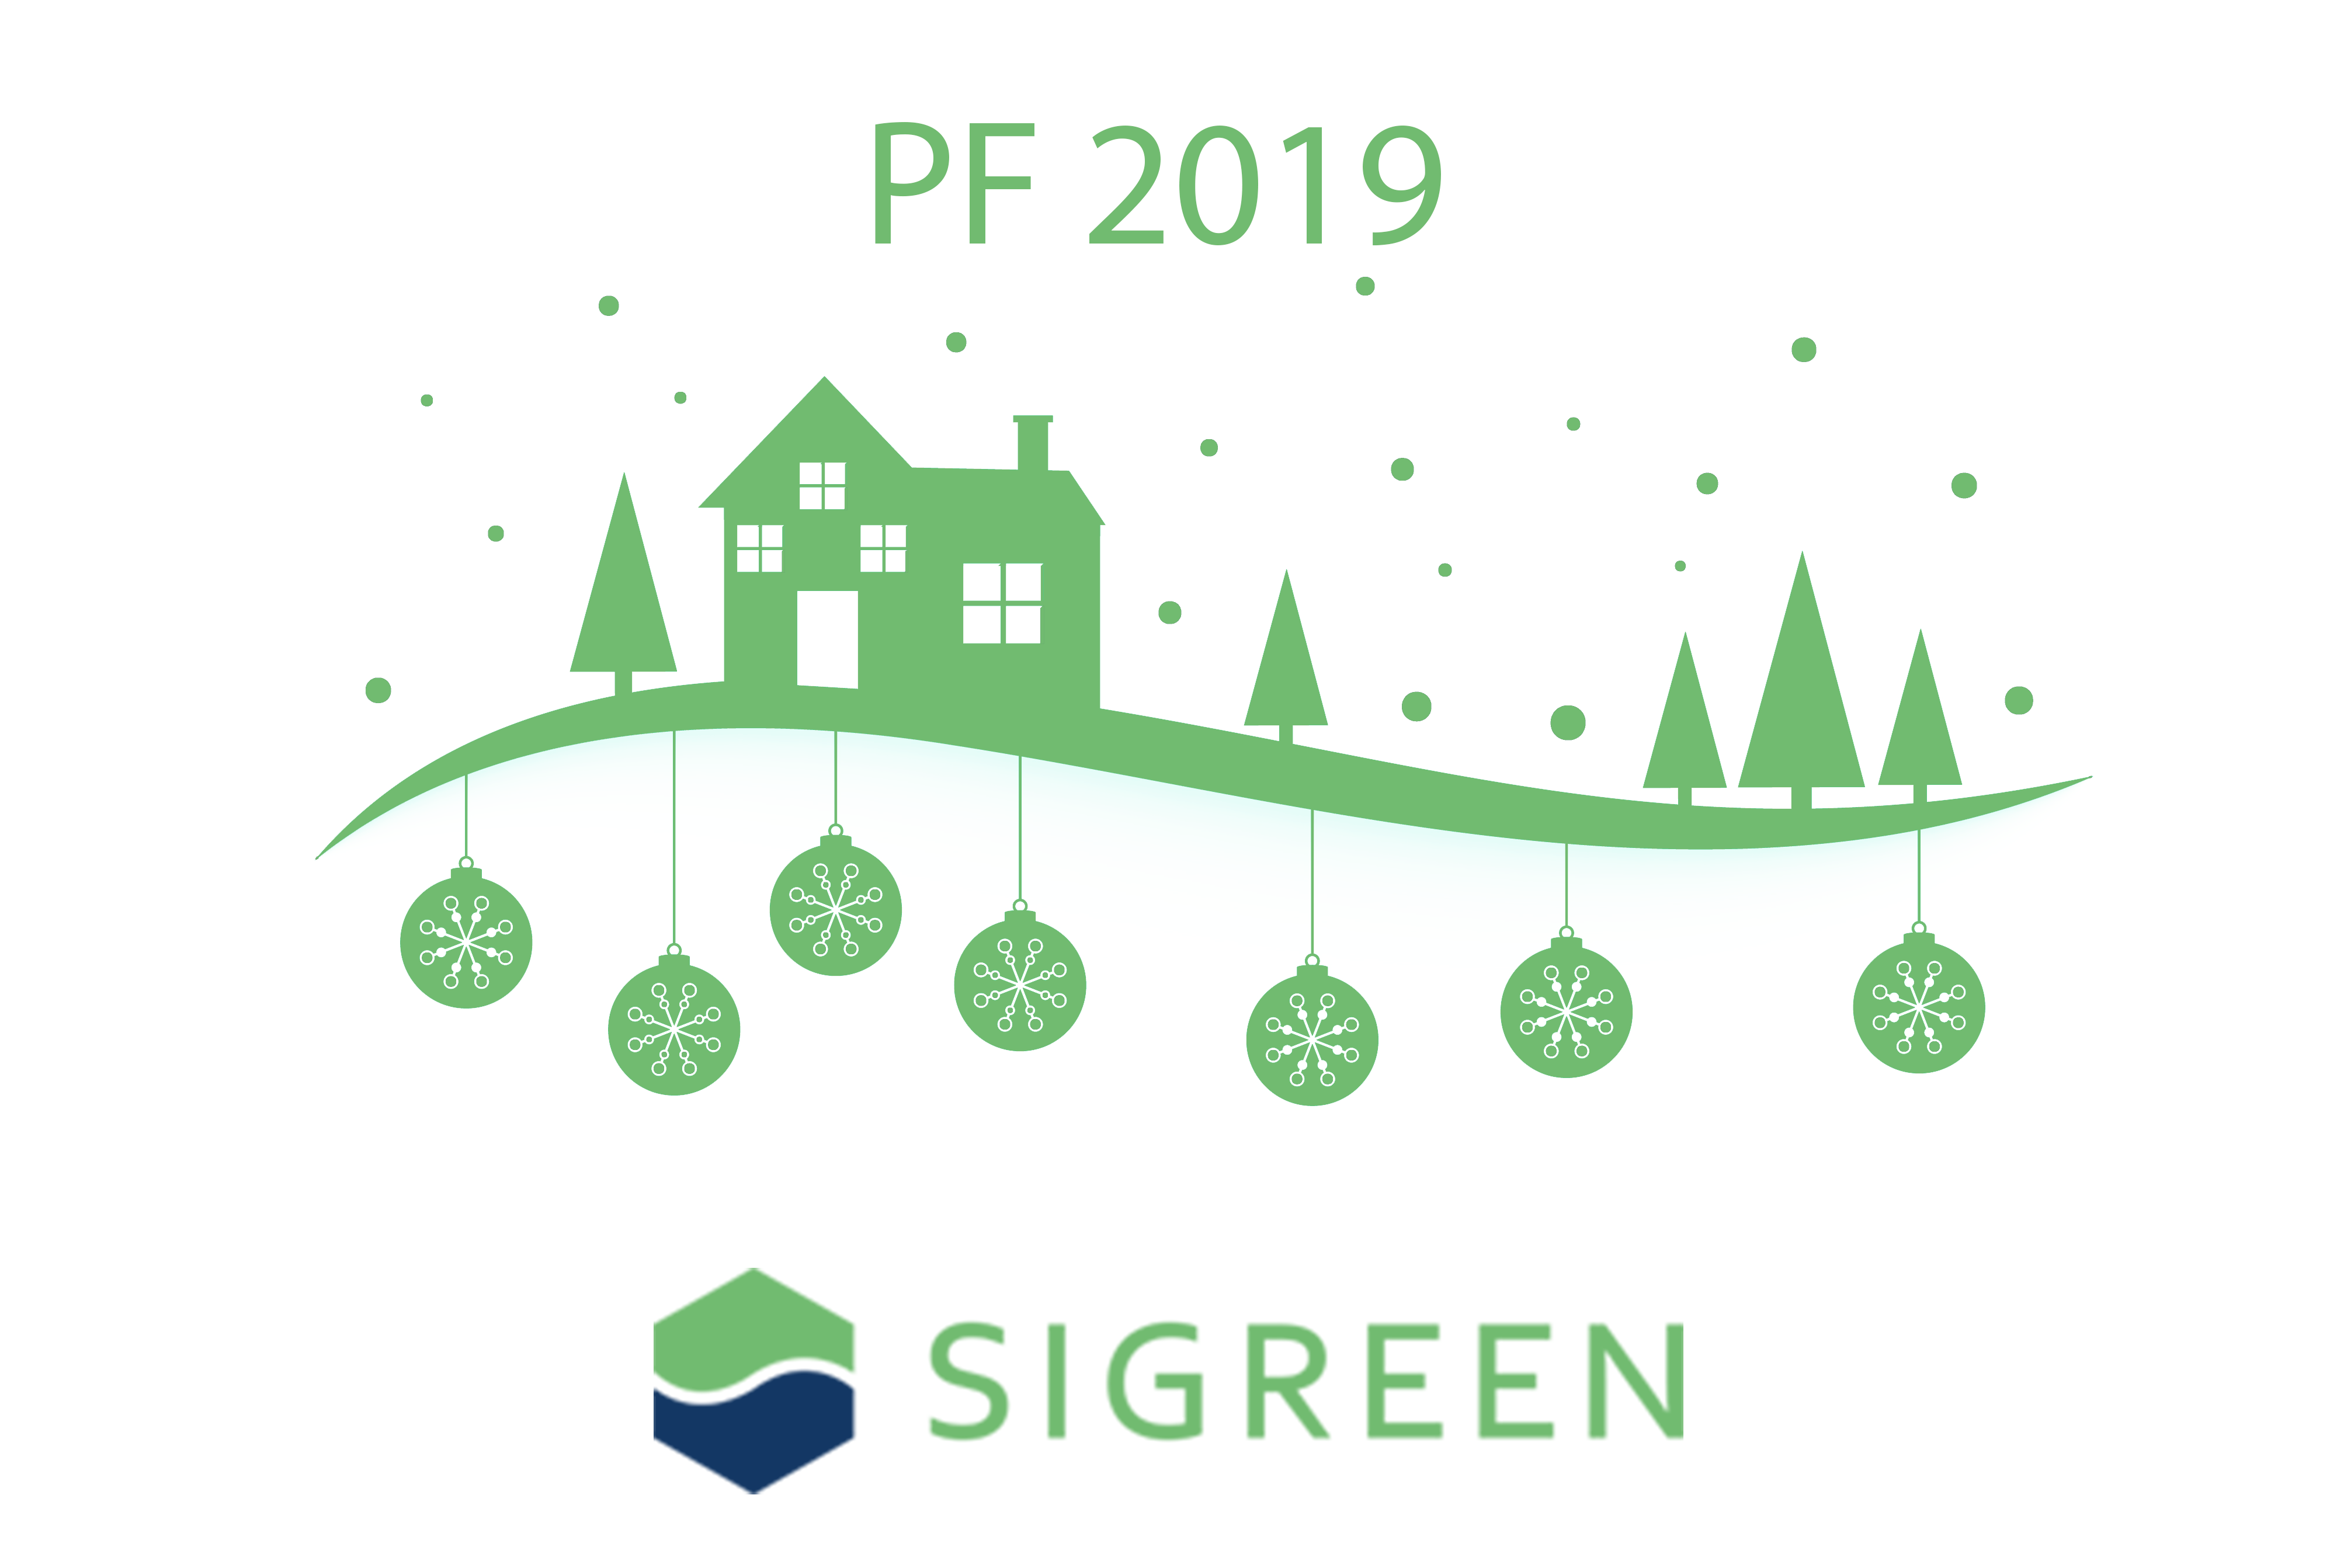 SIGREEN POUR FÉLICITER 2019, Designed by starline / Freepik